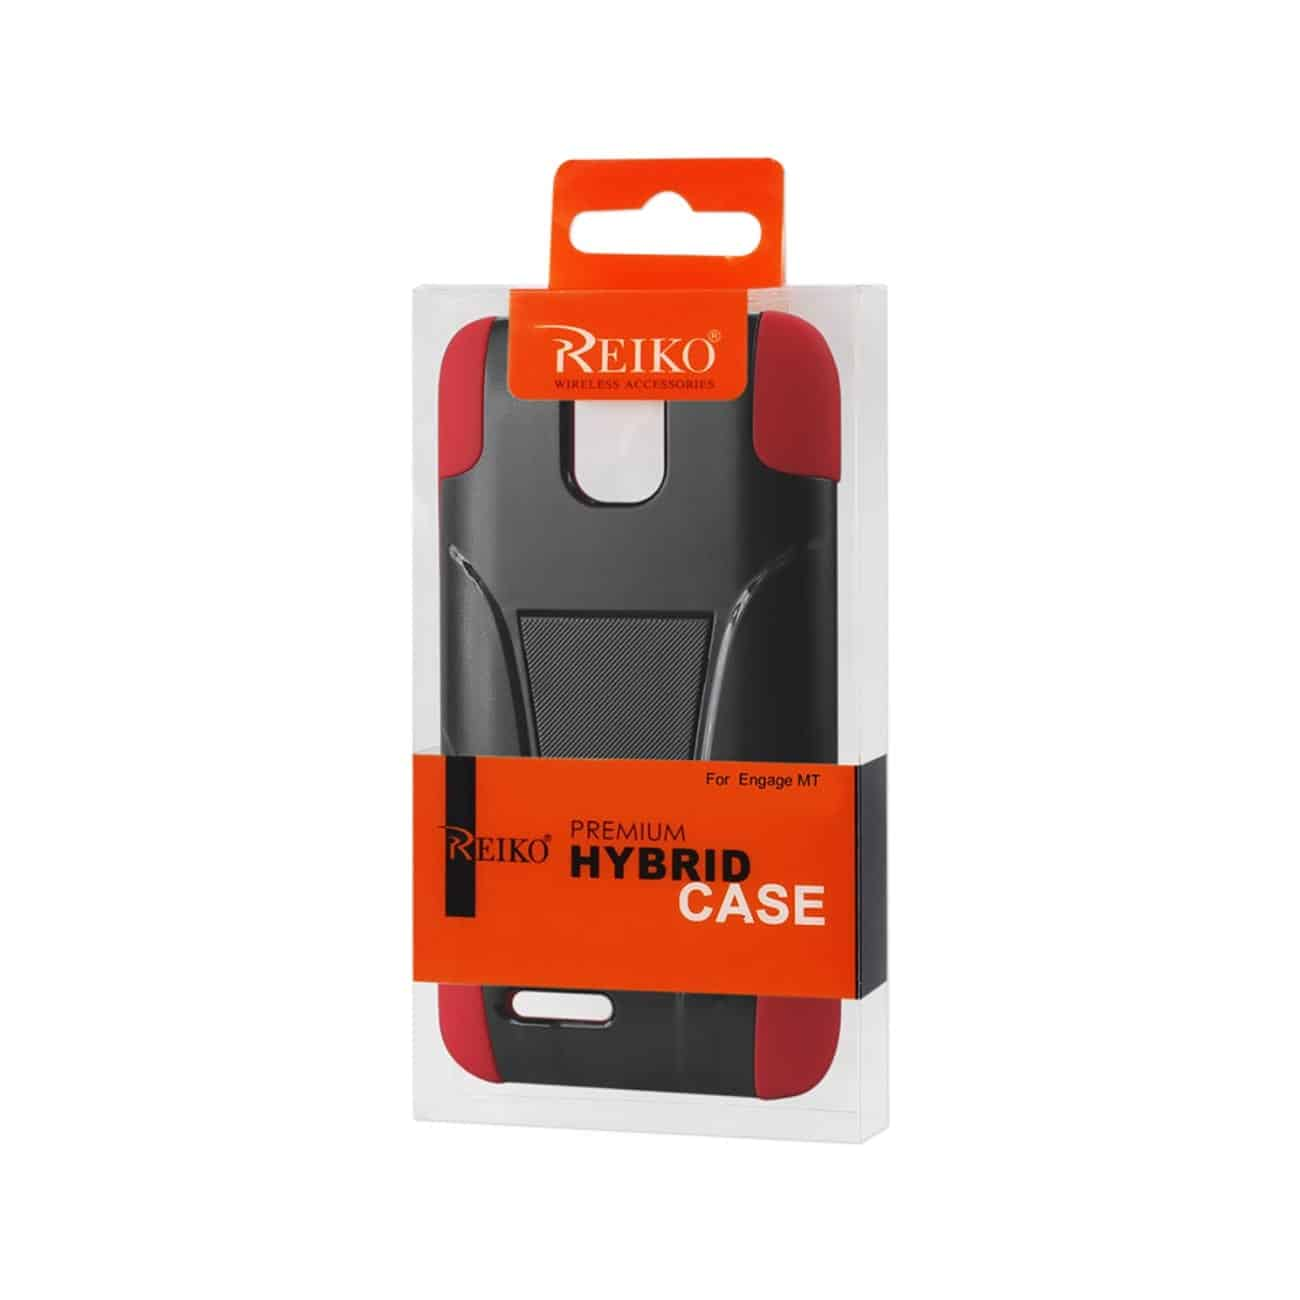 ZTE ENGAGE MT HYBRID HEAVY DUTY CASE WITH KICKSTAND IN RED BLACK